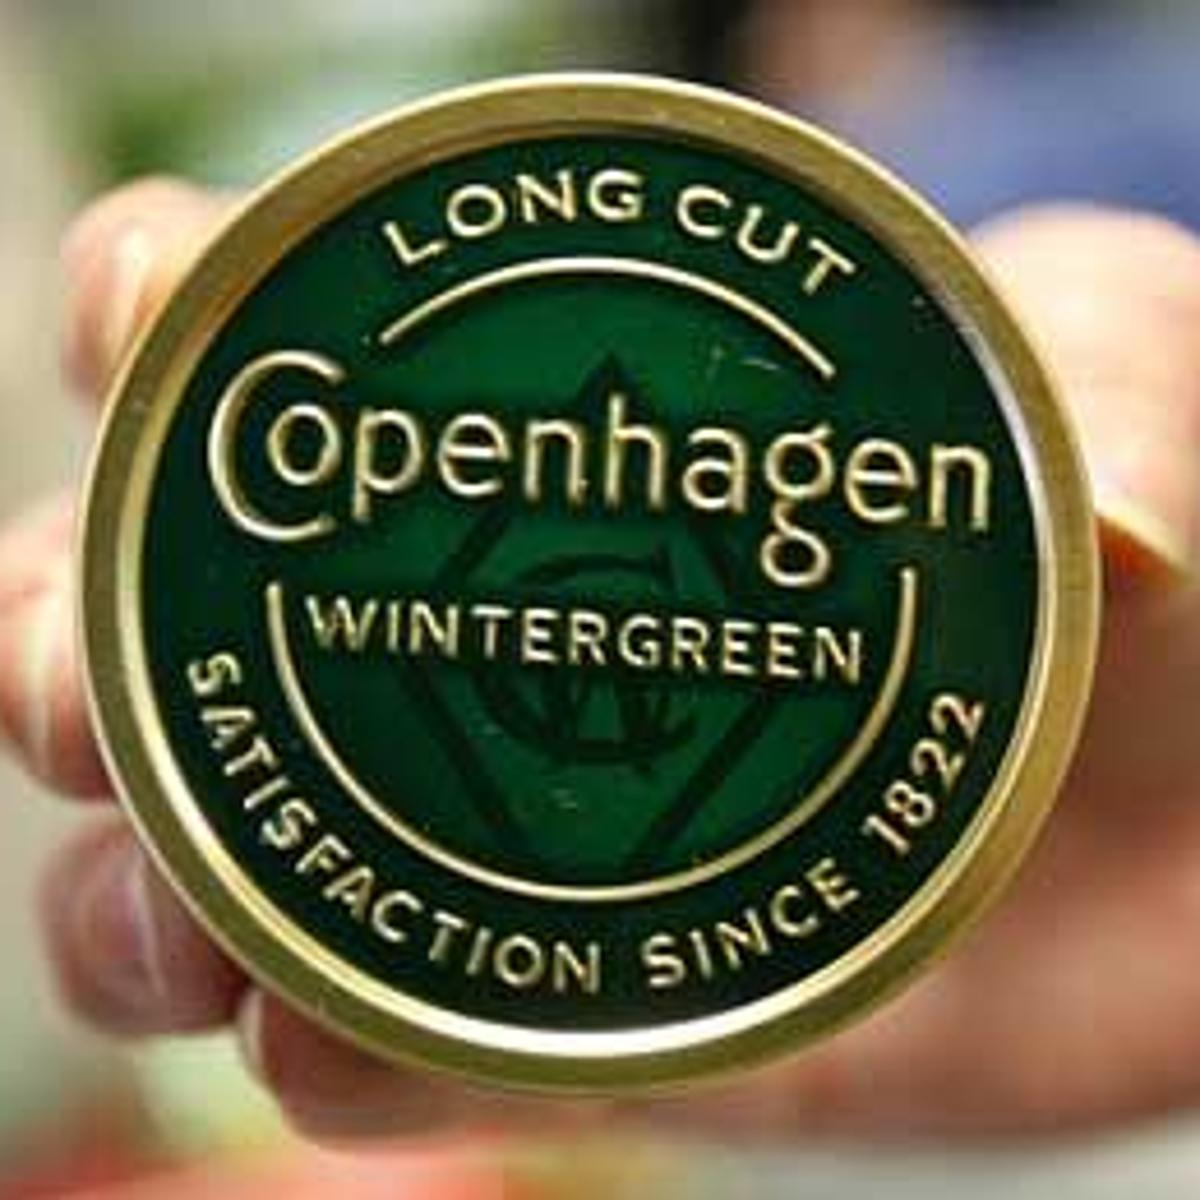 Altria expects big impact from Copenhagen Wintergreen